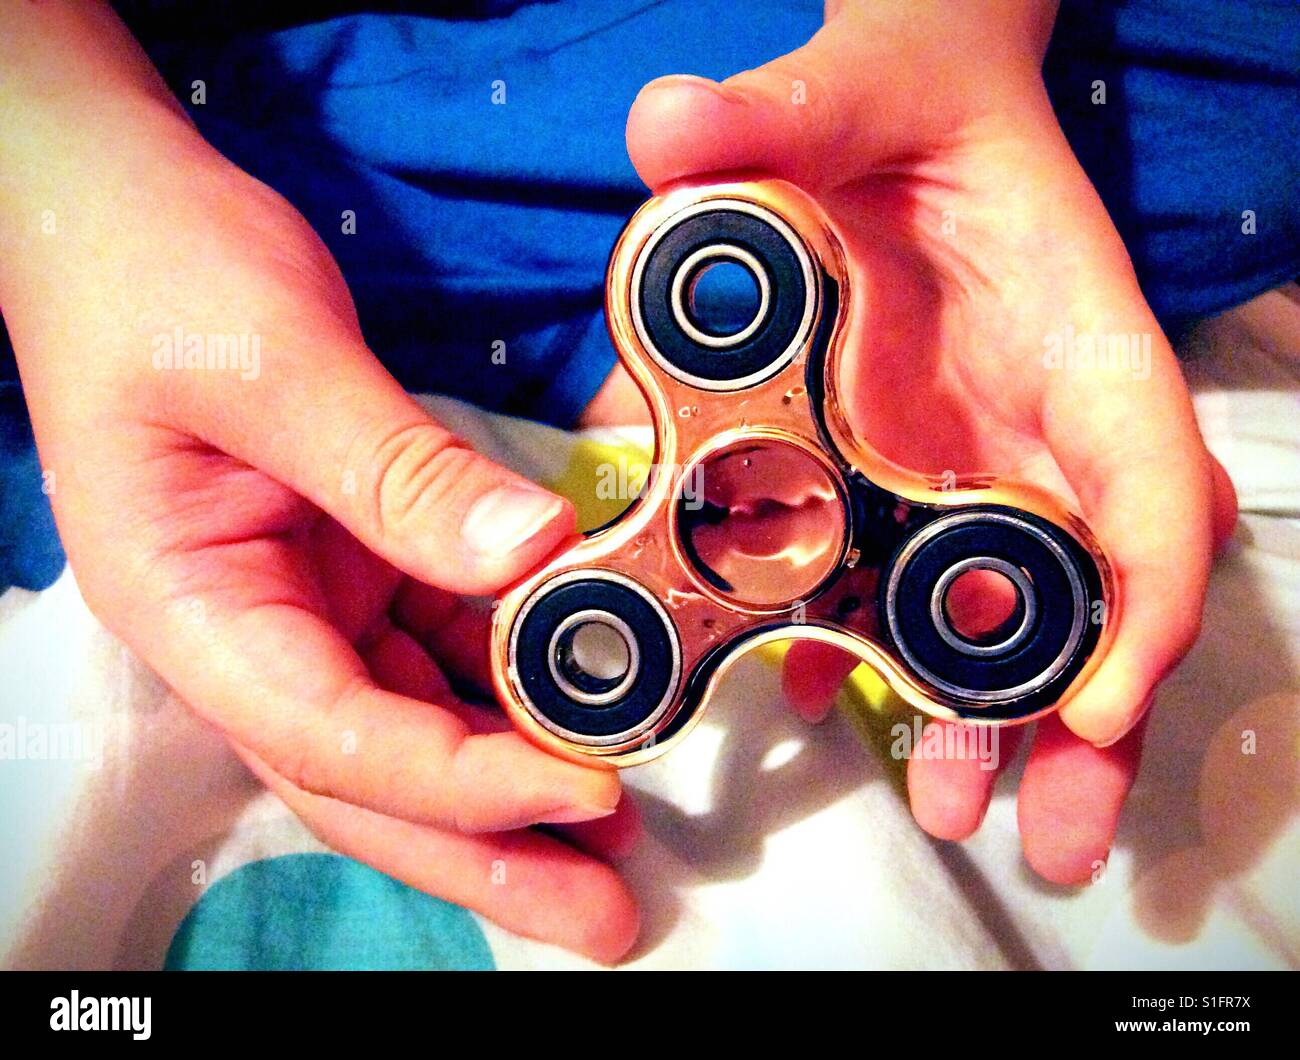 A child's hands holding a gold coloured fidget spinner. - Stock Image